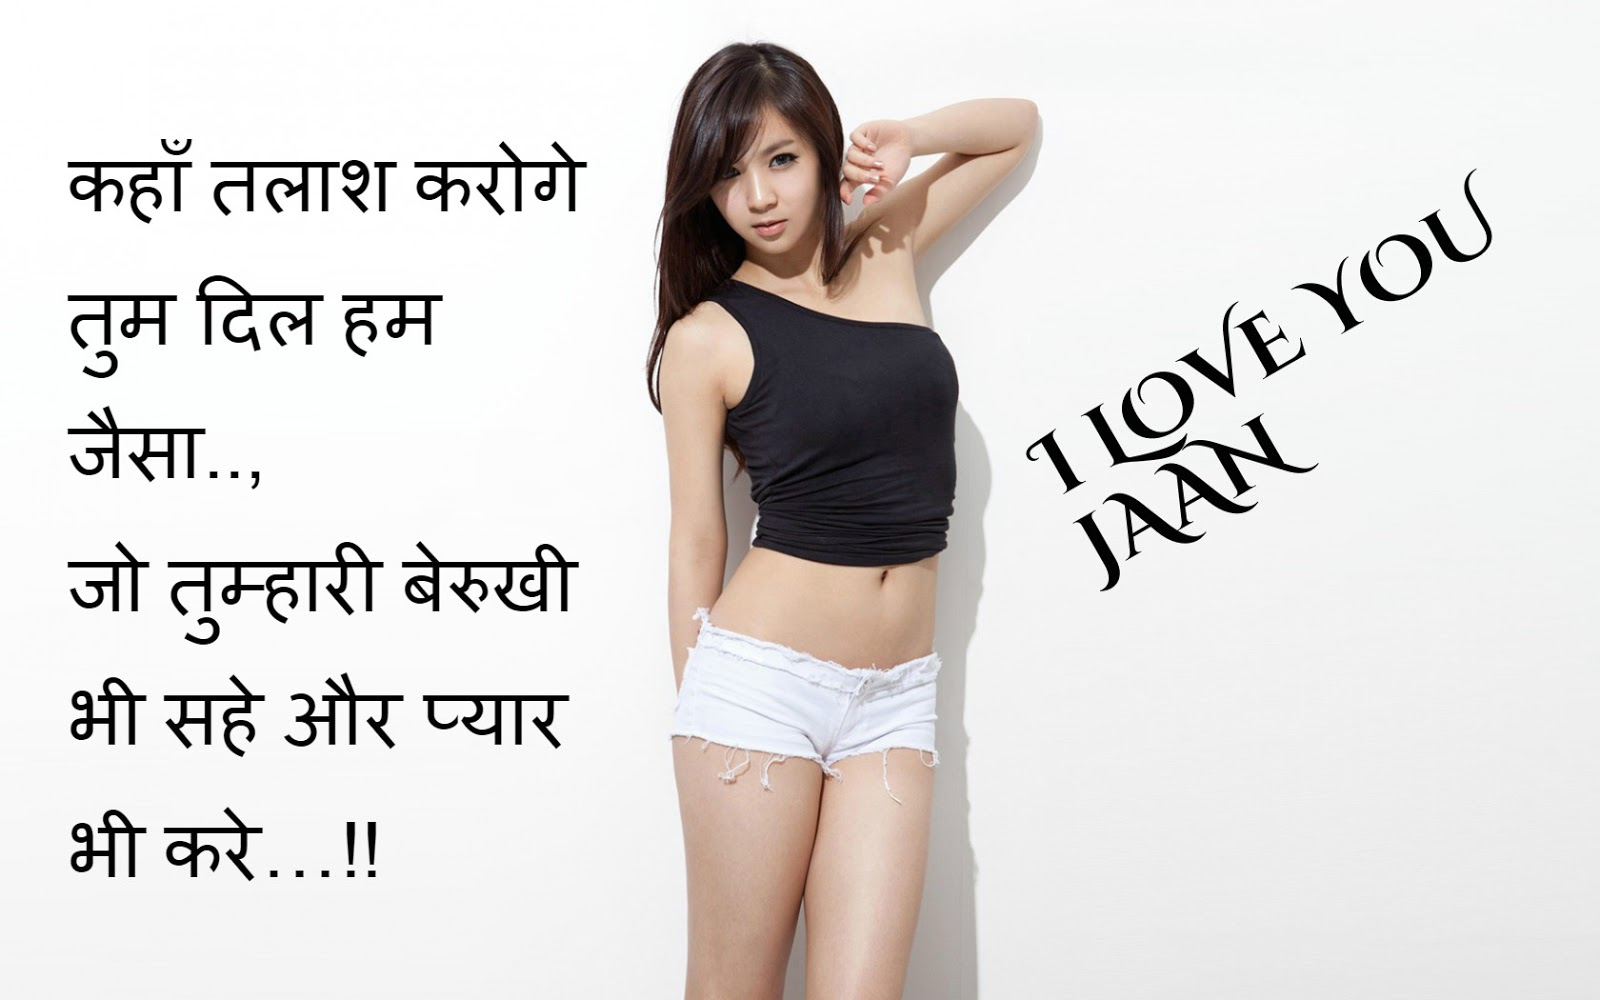 Sexy shayari for wife